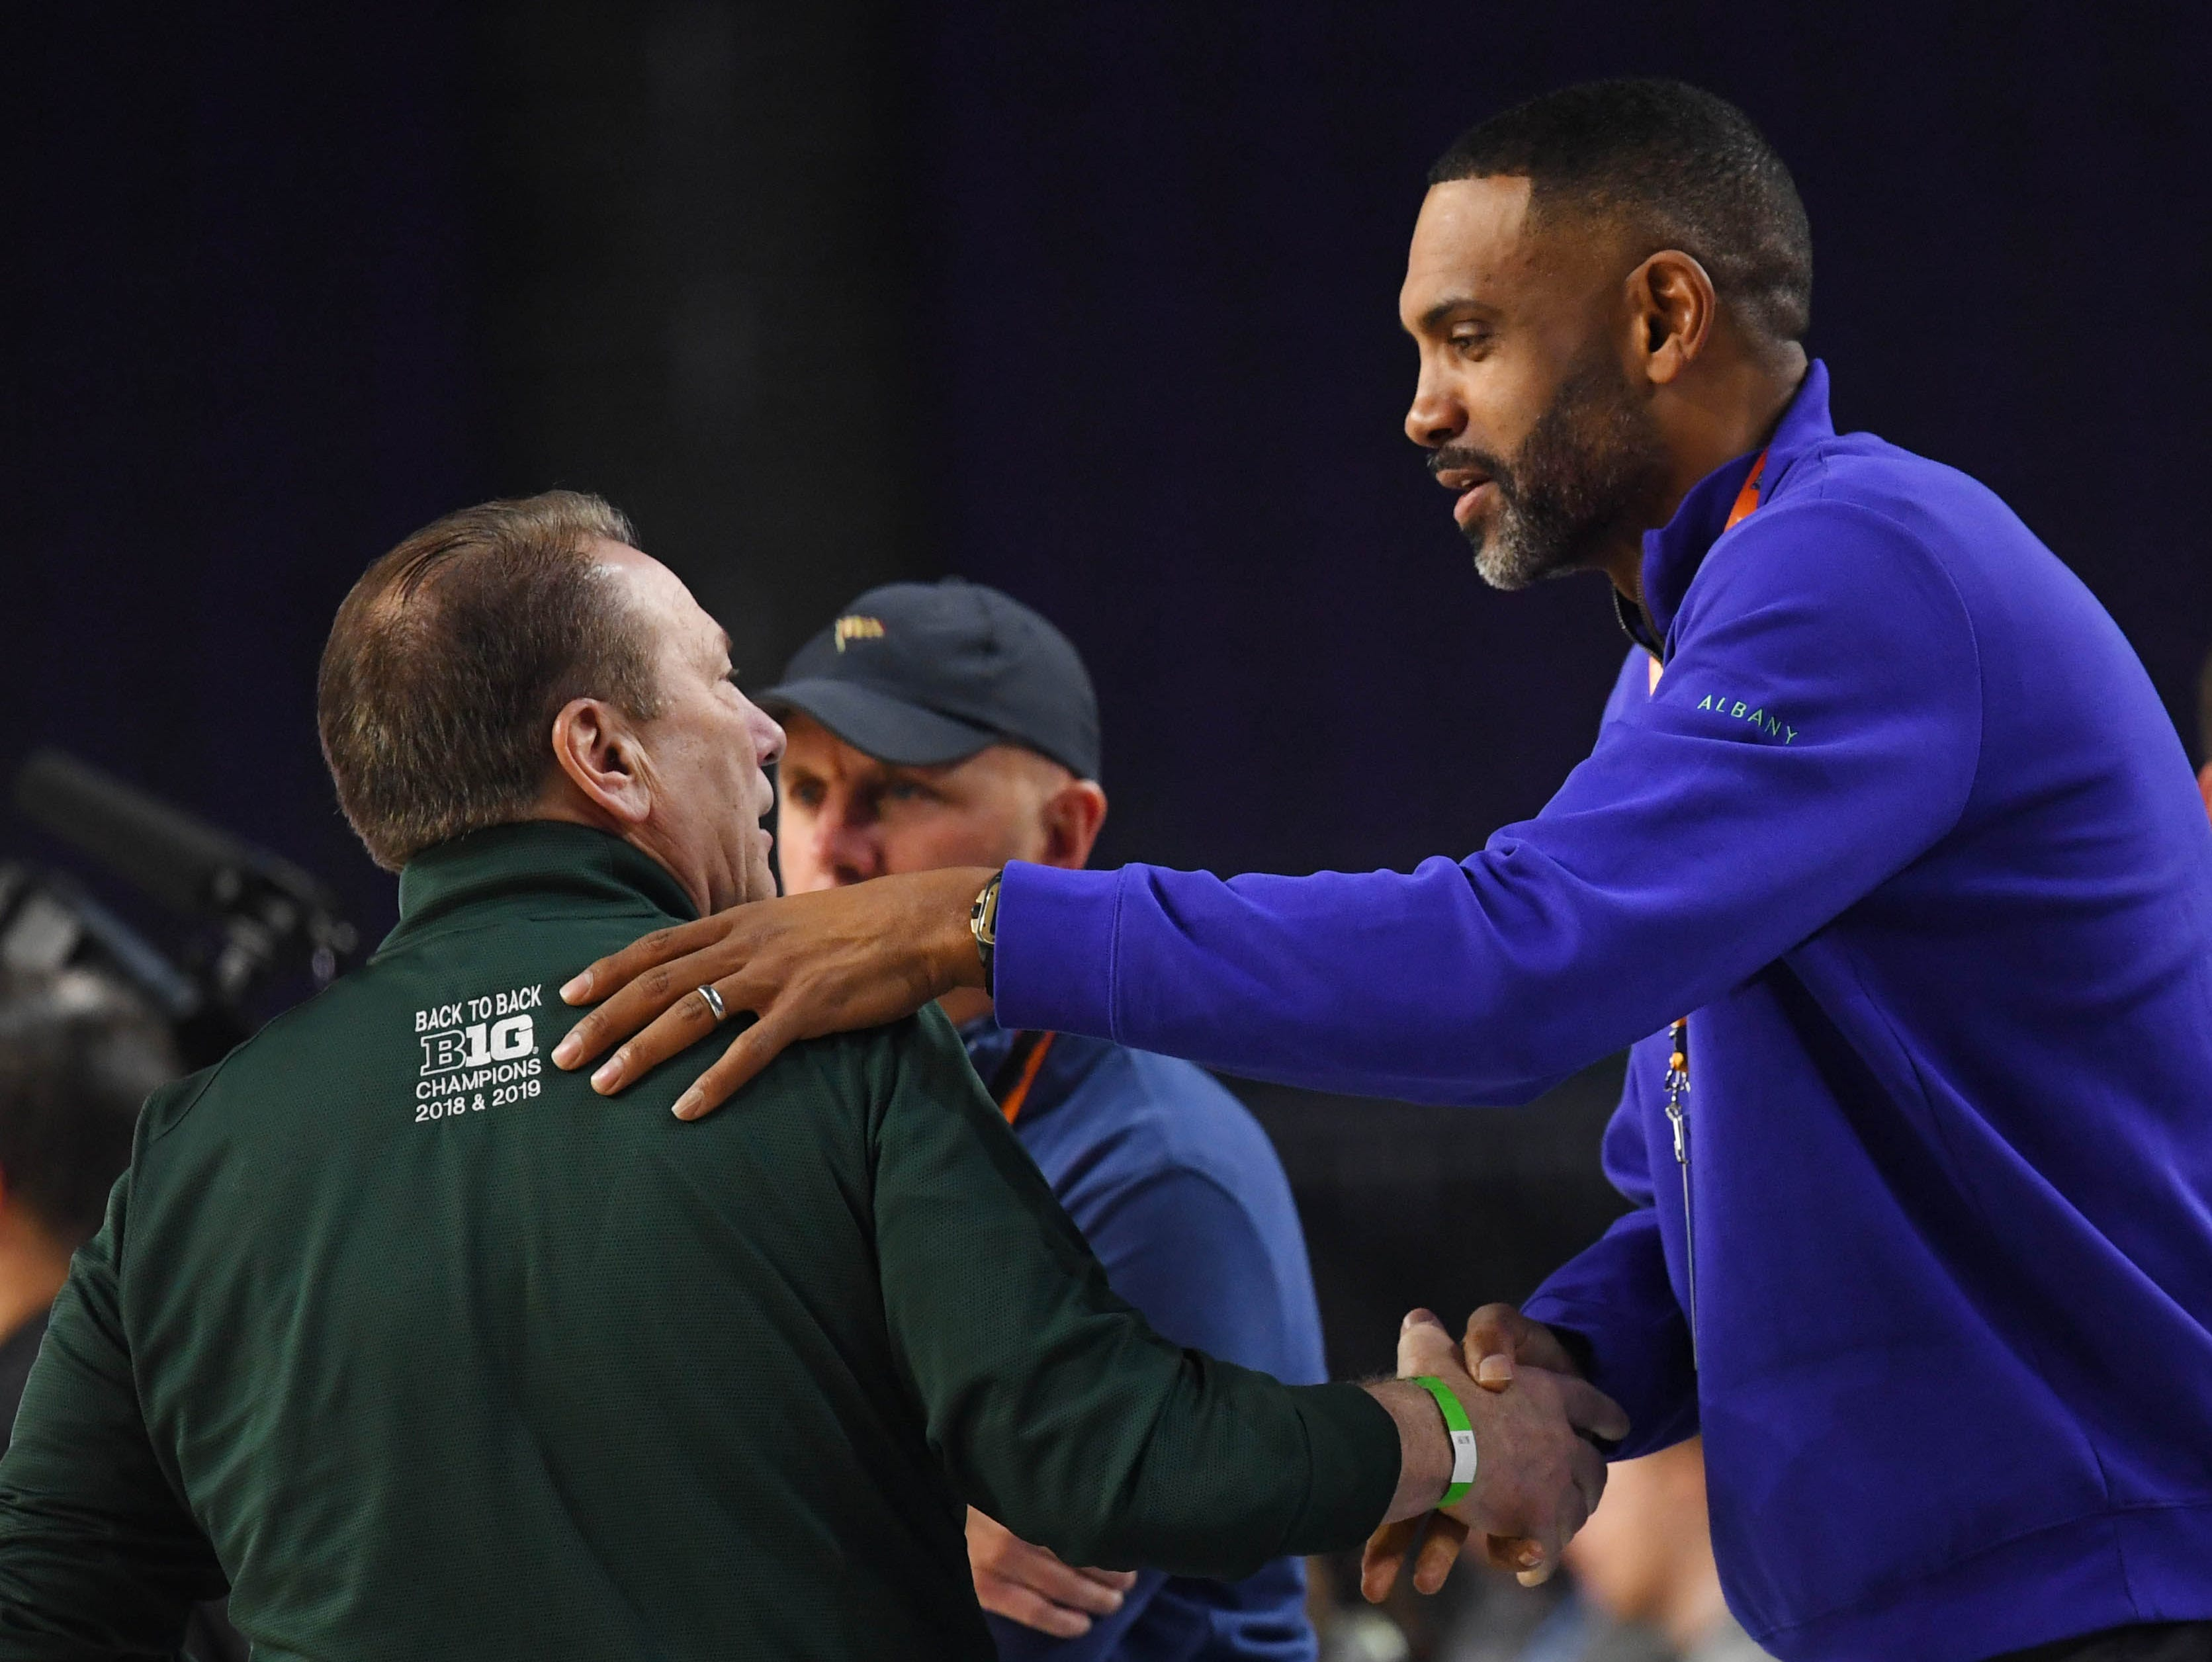 Apr 5, 2019; Minneapolis, MN, USA; Michigan State Spartans head coach Tom Izzo (left) talks with Grant Hill during practice for the 2019 men's Final Four at US Bank Stadium. Mandatory Credit: Robert Deutsch-USA TODAY Sports